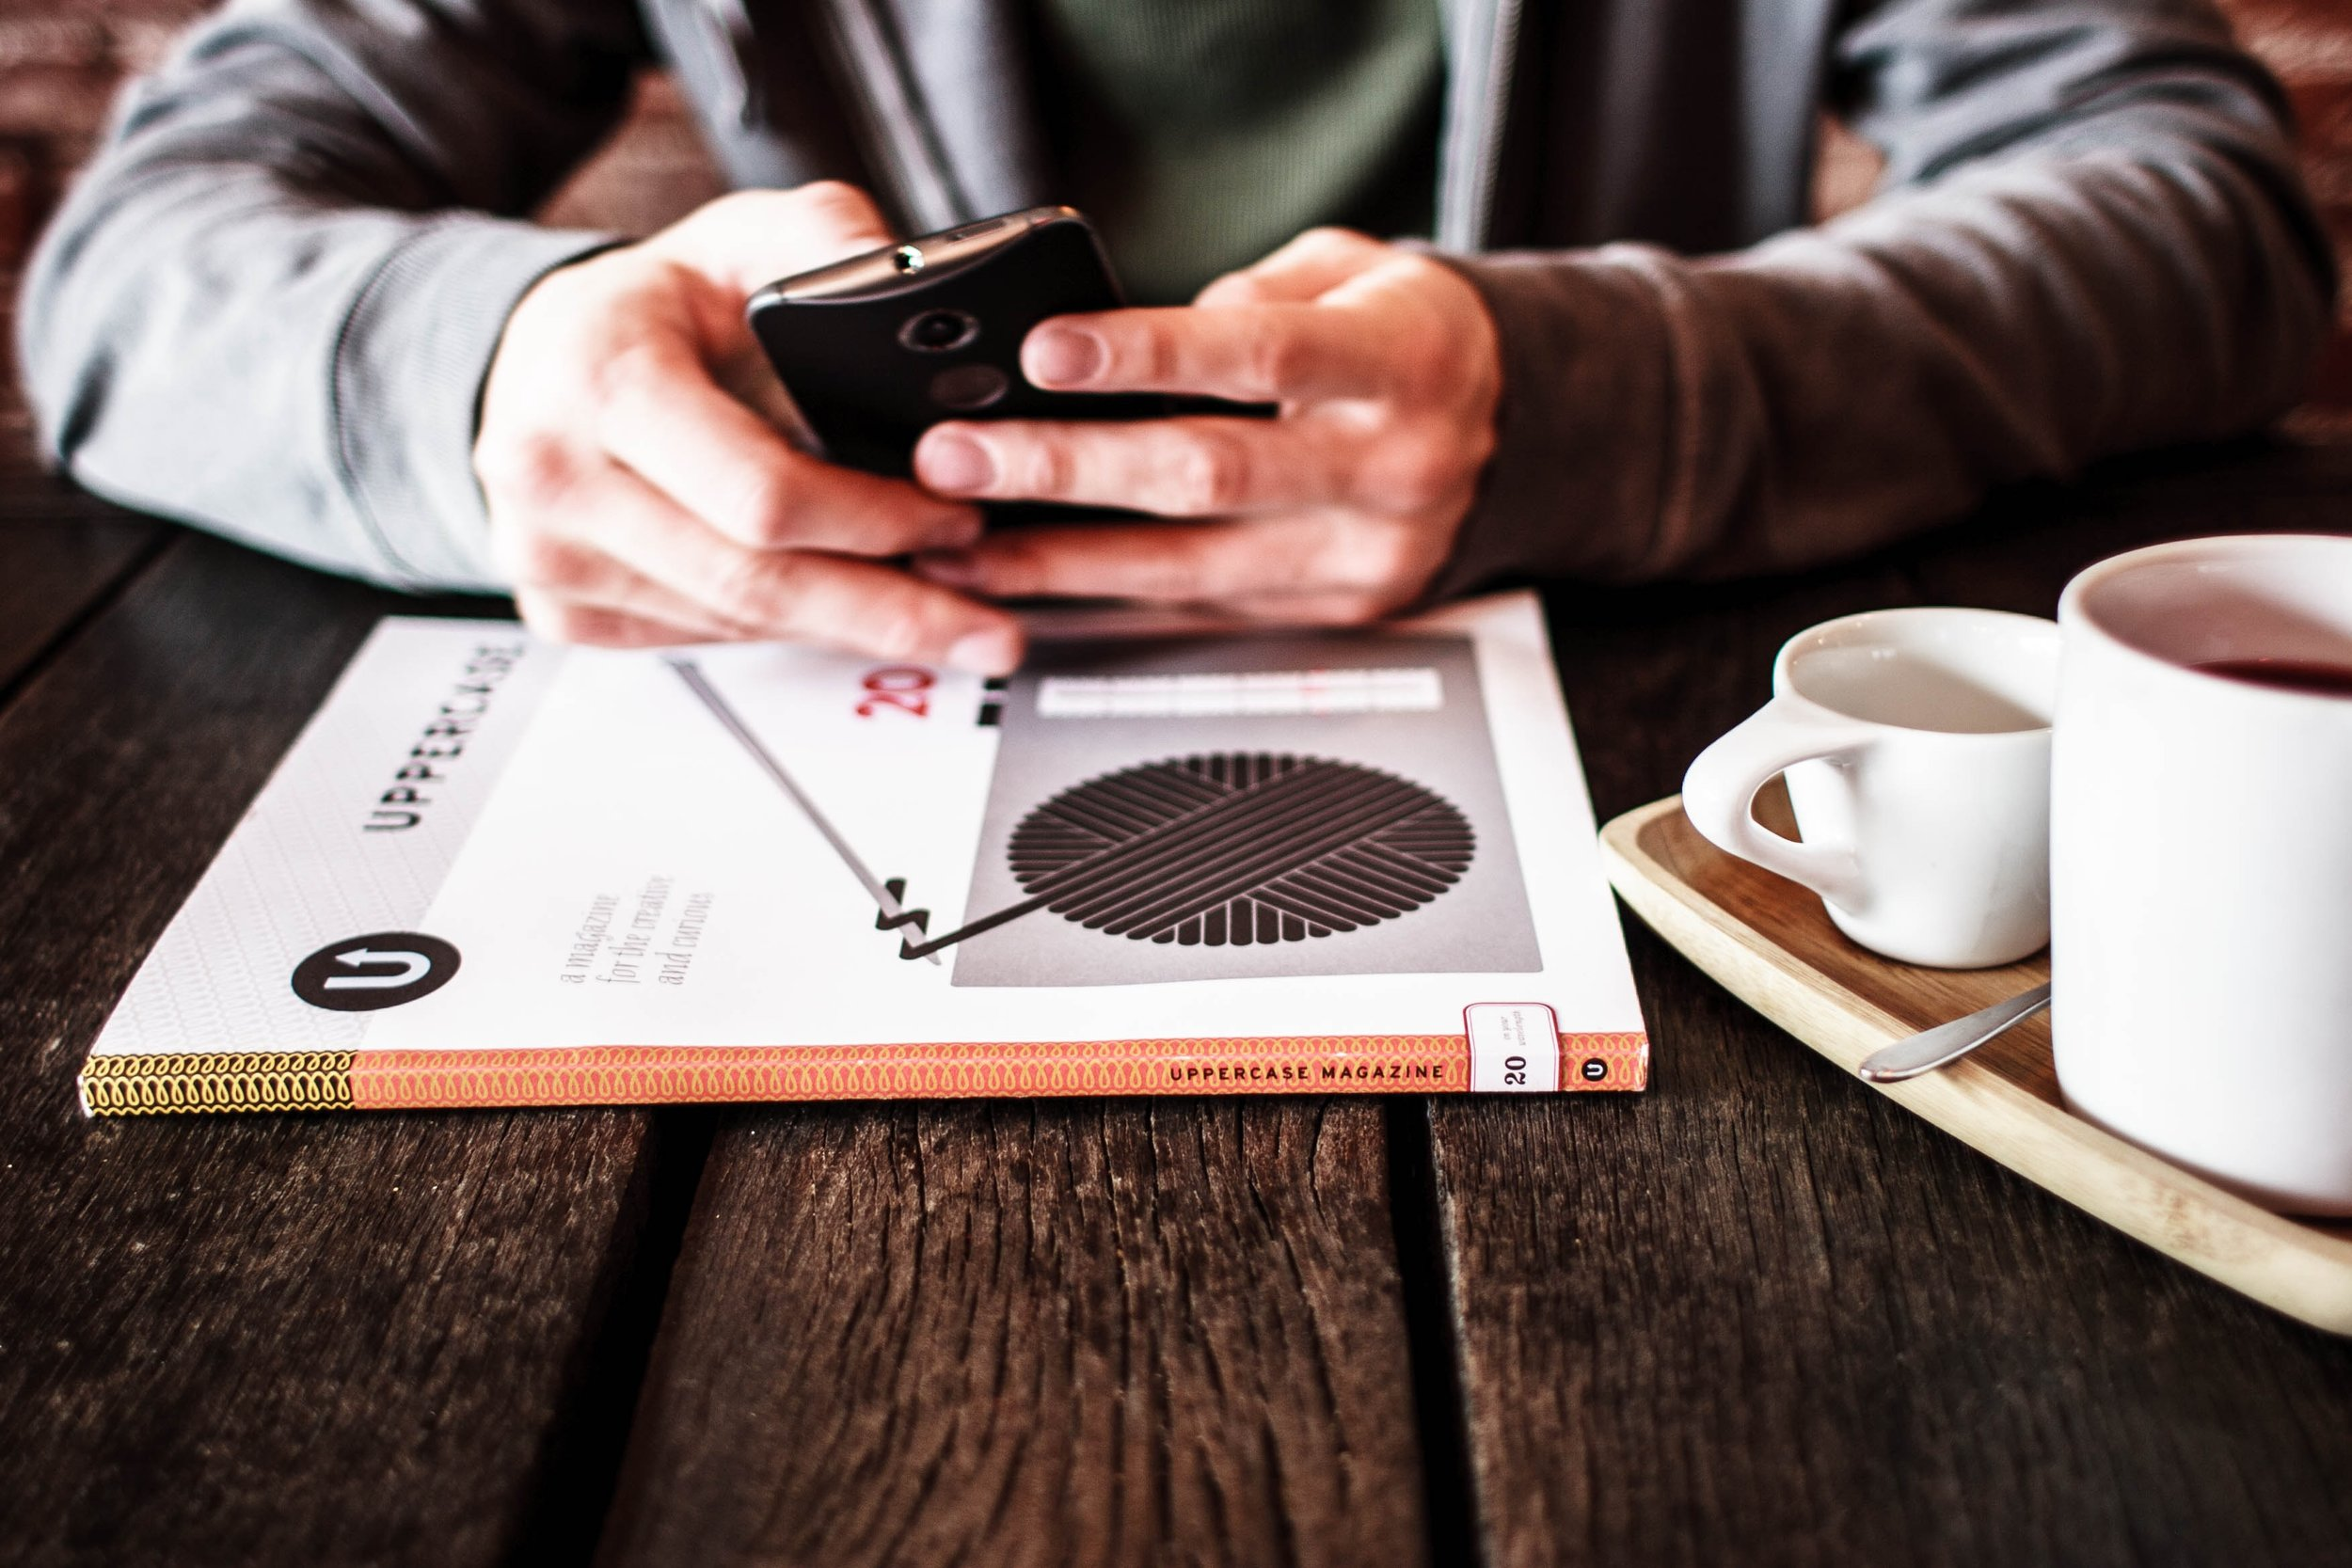 Pick up your phone and do these three things after reading this blog post.